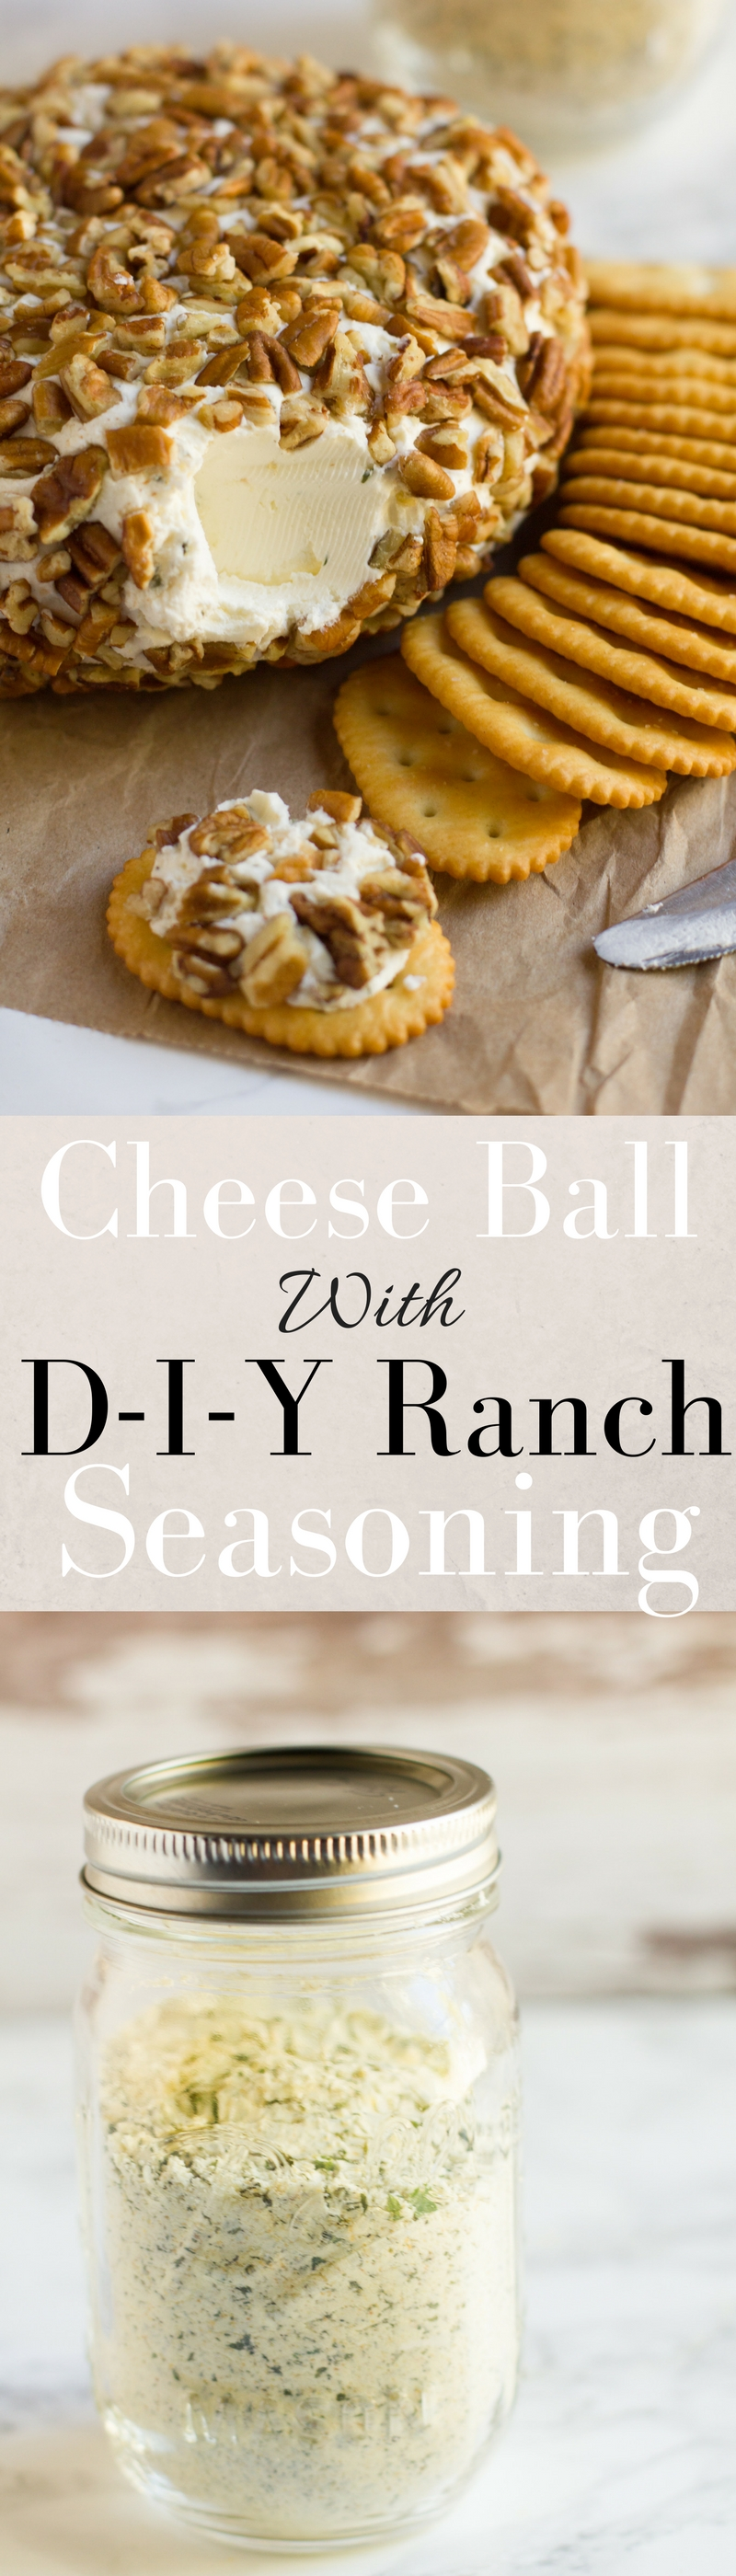 This festive cheese ball is ready in 10 minutes or less and includes a recipe for DIY ranch seasoning!